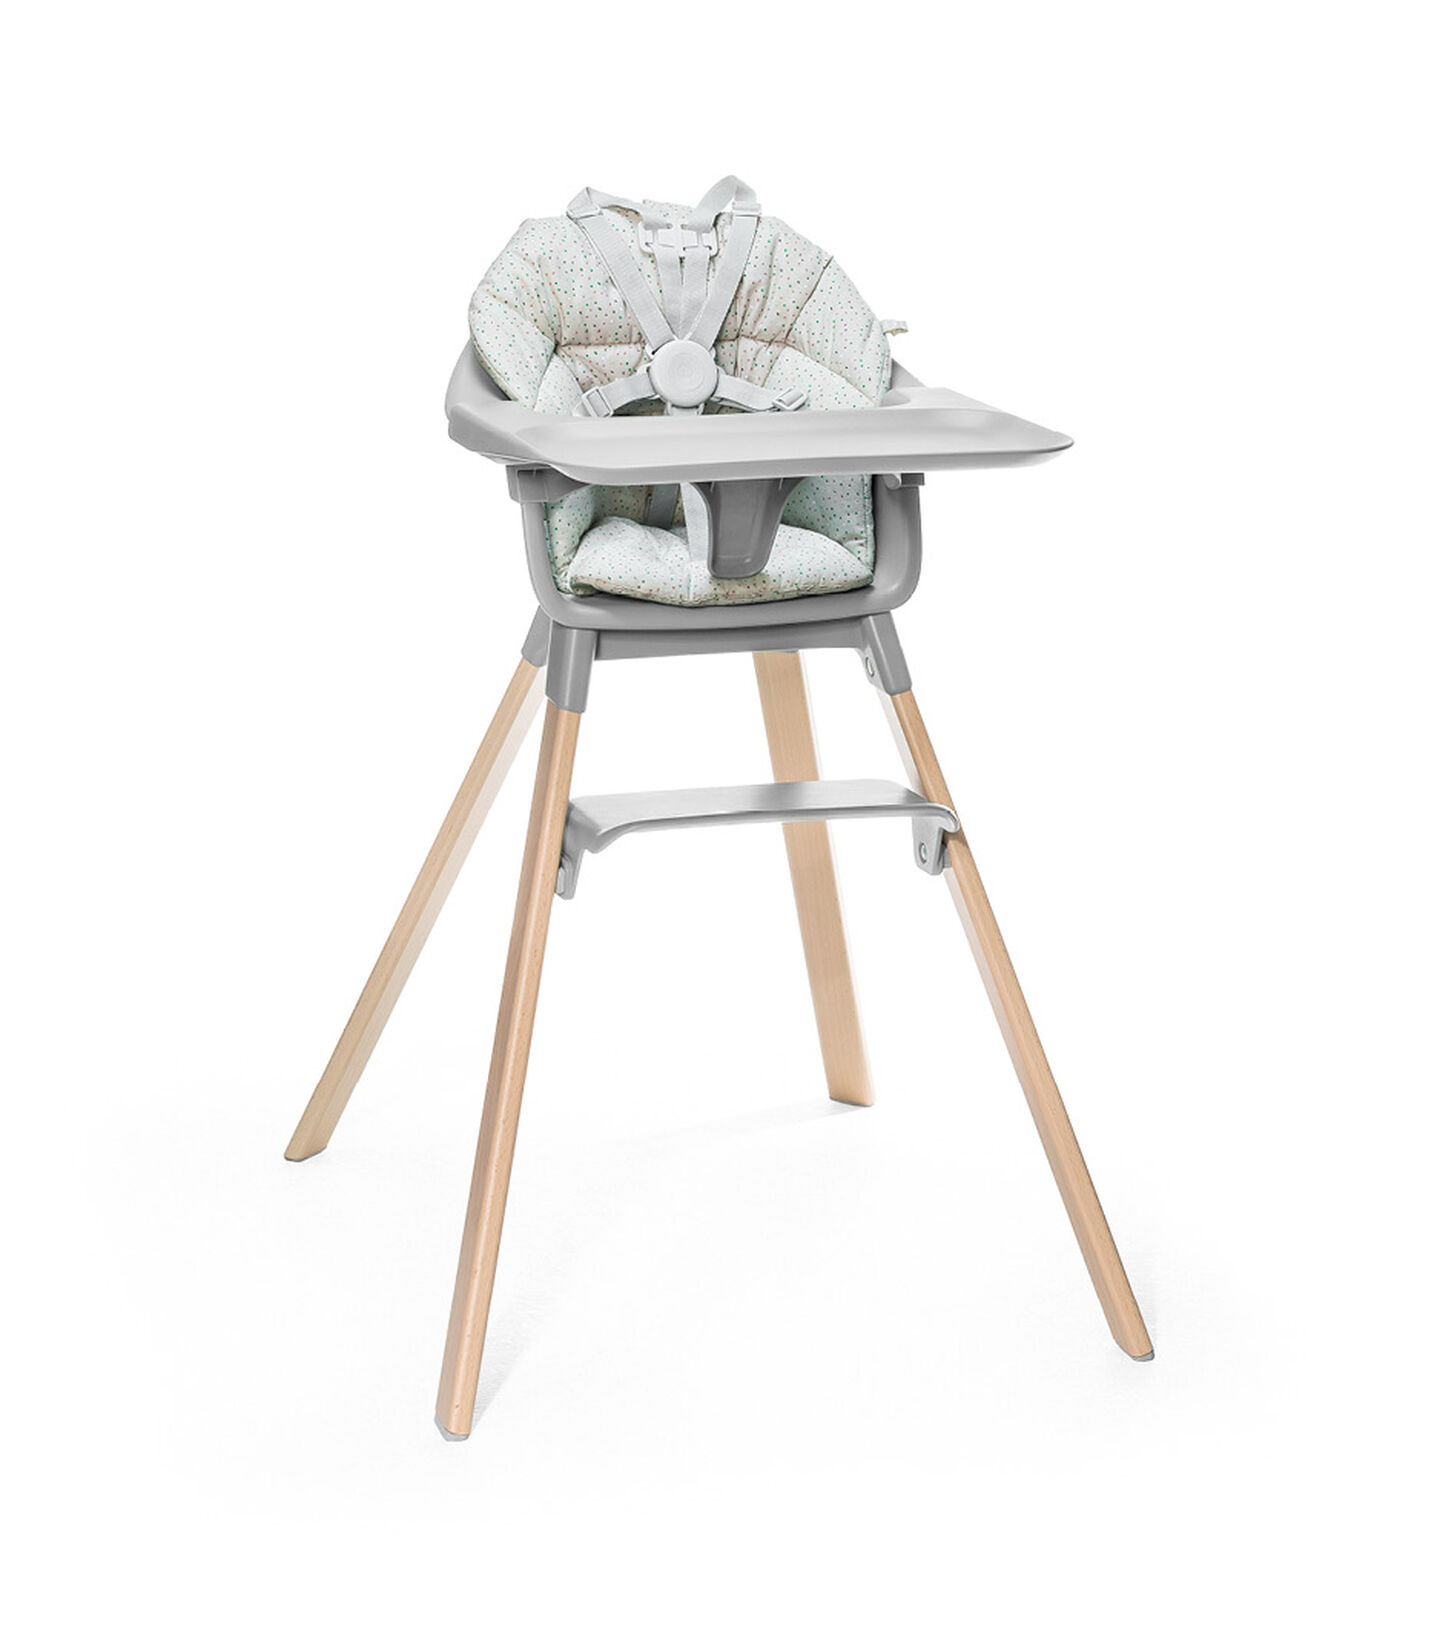 Stokke® Clikk™ High Chair. Natural Beech wood and Cloud Grey plastic parts including Tray. Cushion Grey Sprinkle and Harness. view 3